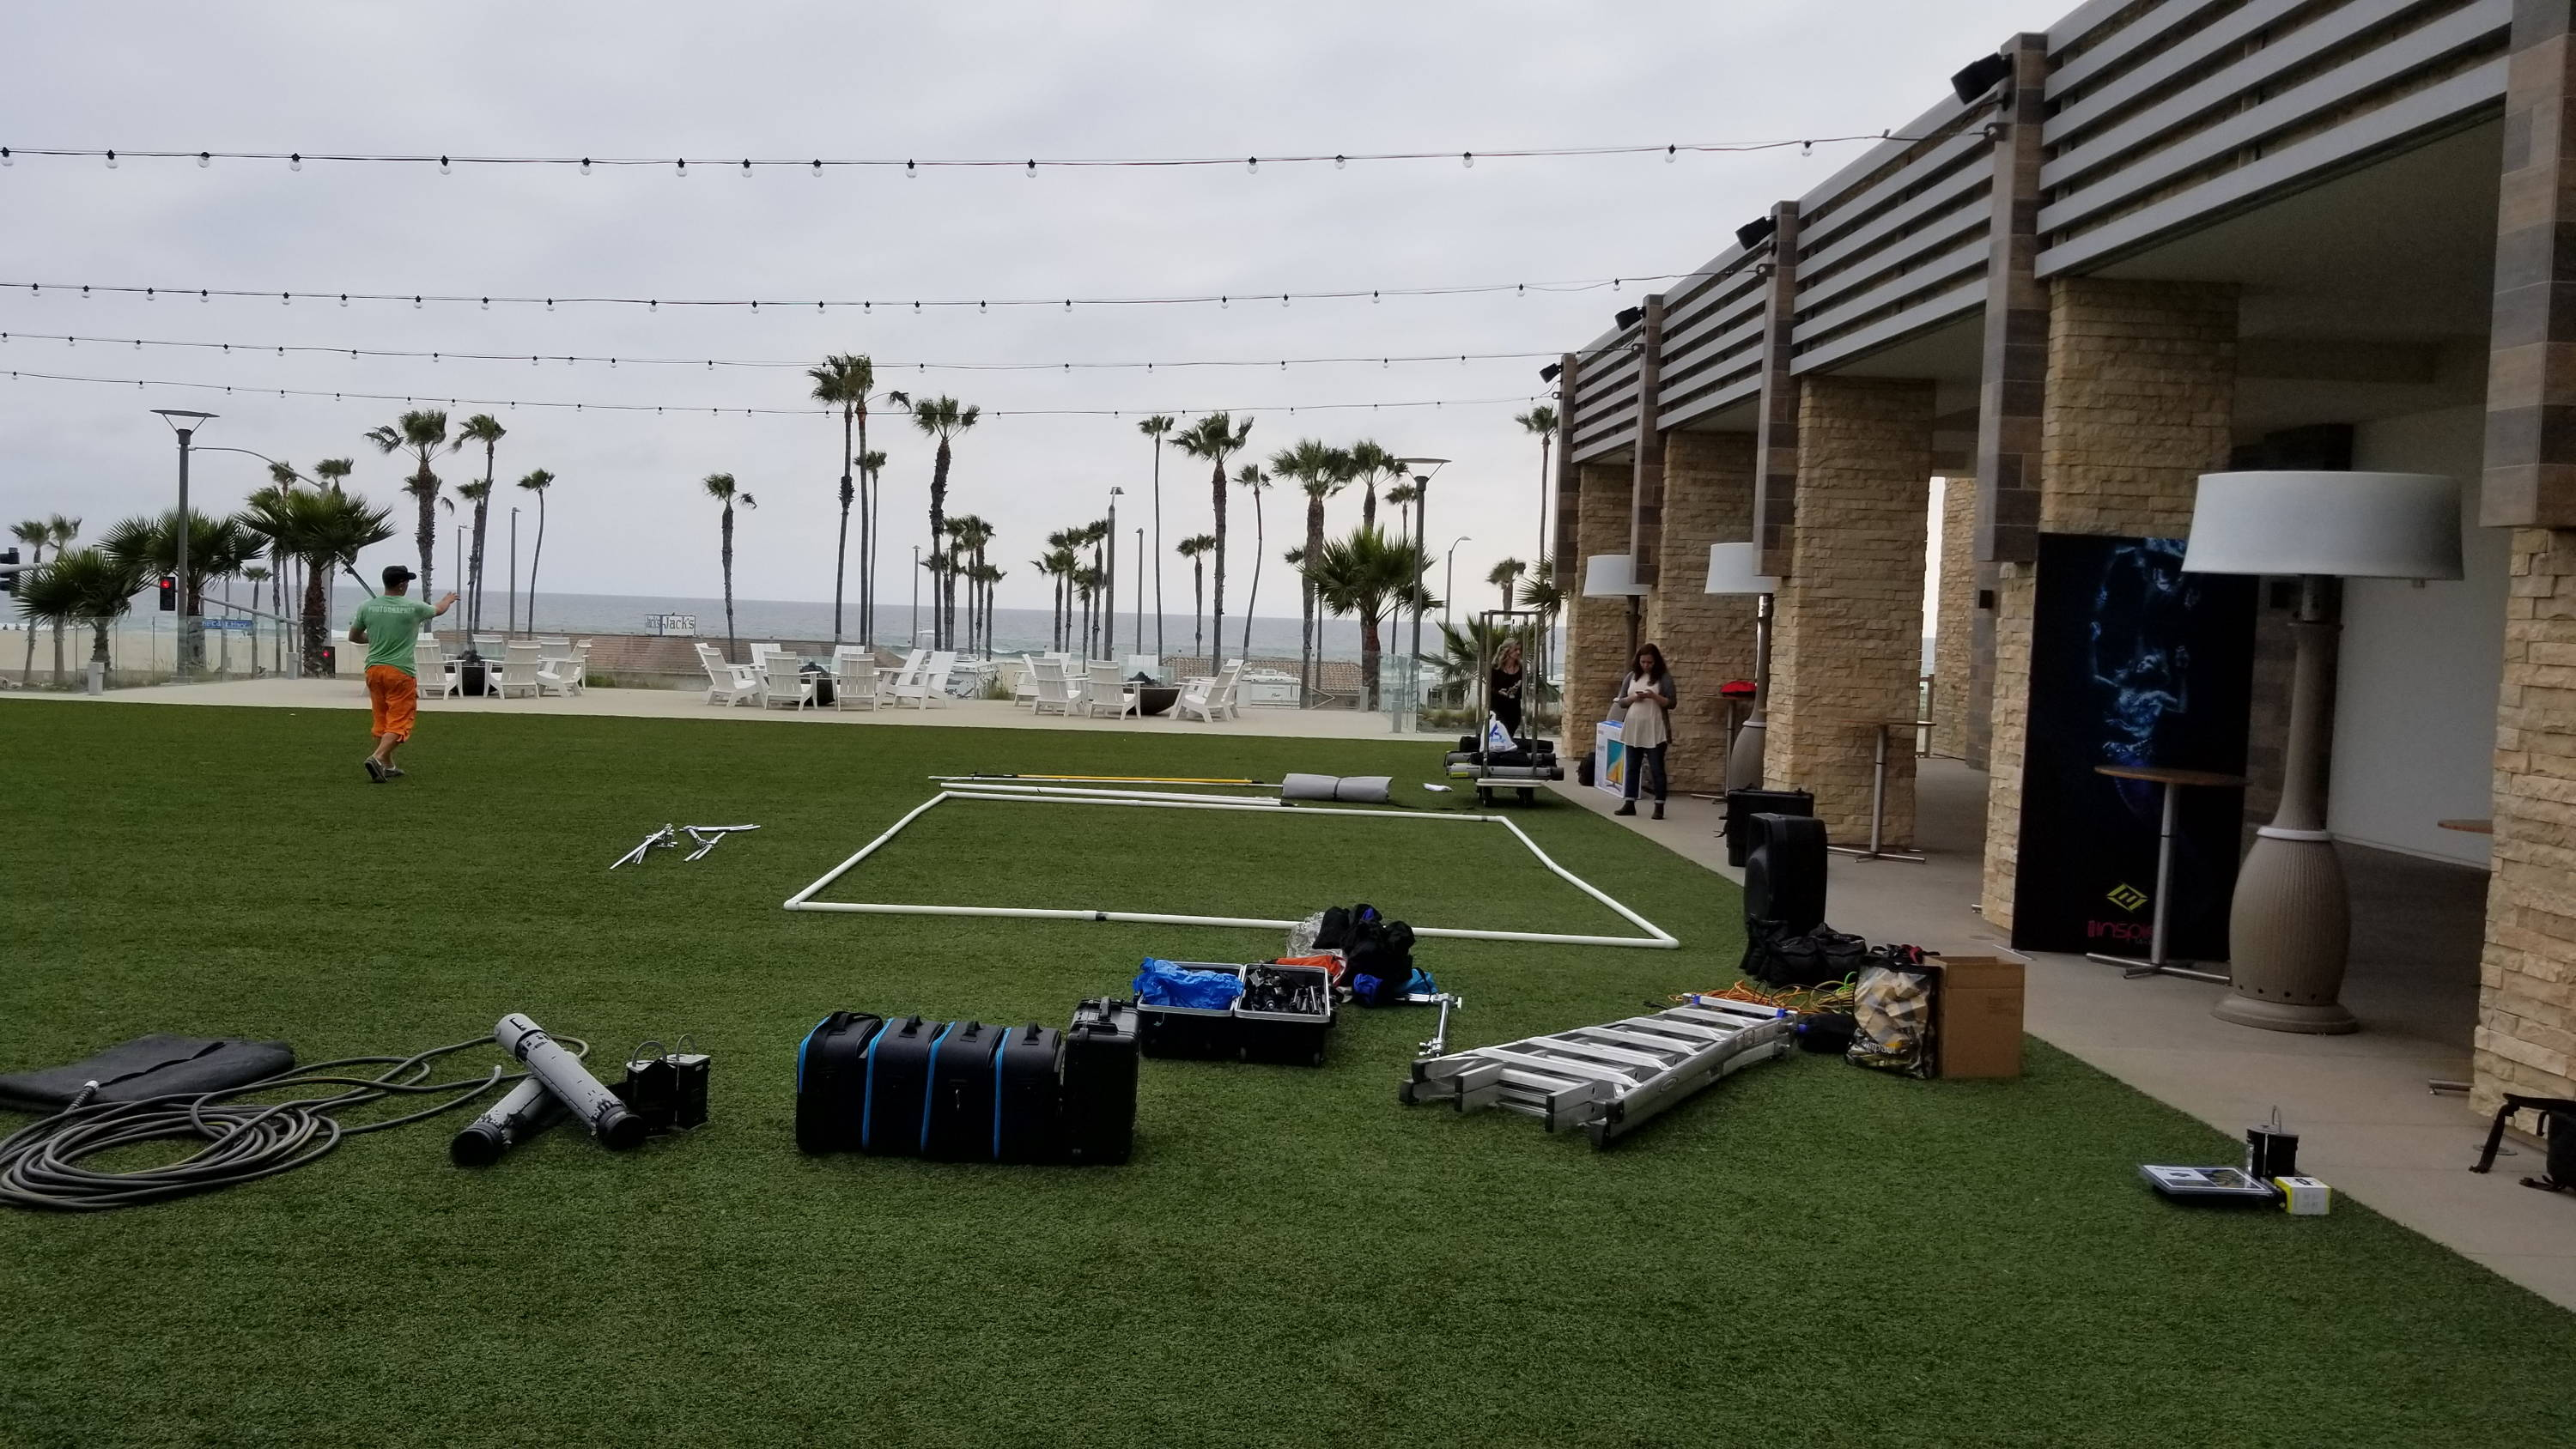 The crews lays all the gear out on the lawn before starting set up to put the best plan in place.